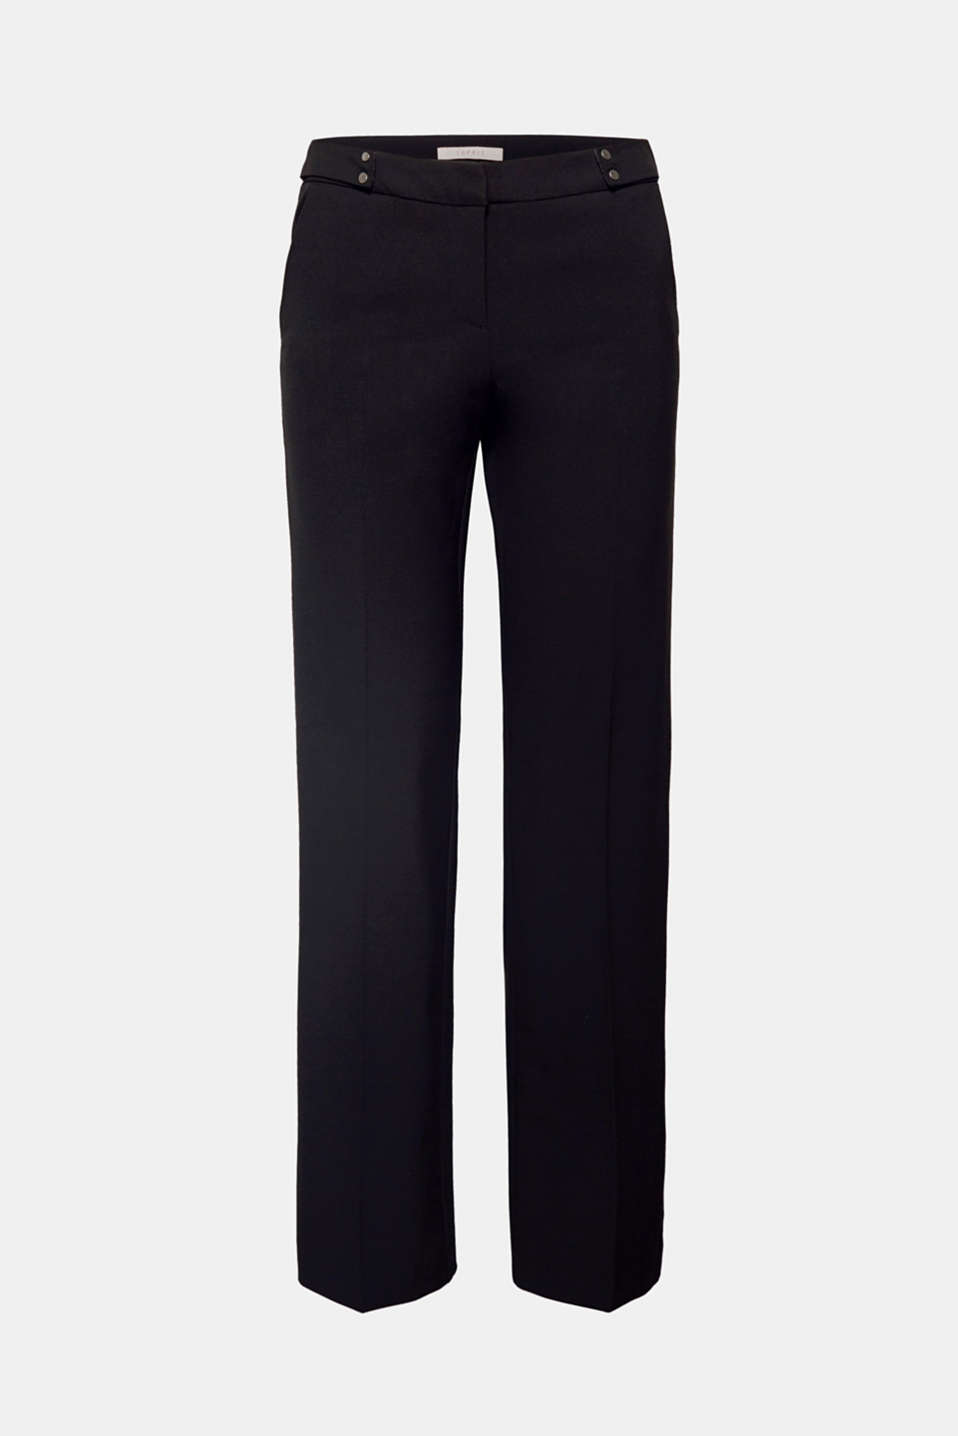 These lightweight stretch trousers are classic and stylish thanks to their straight hem width, the decorative straps and charming waist pleats.